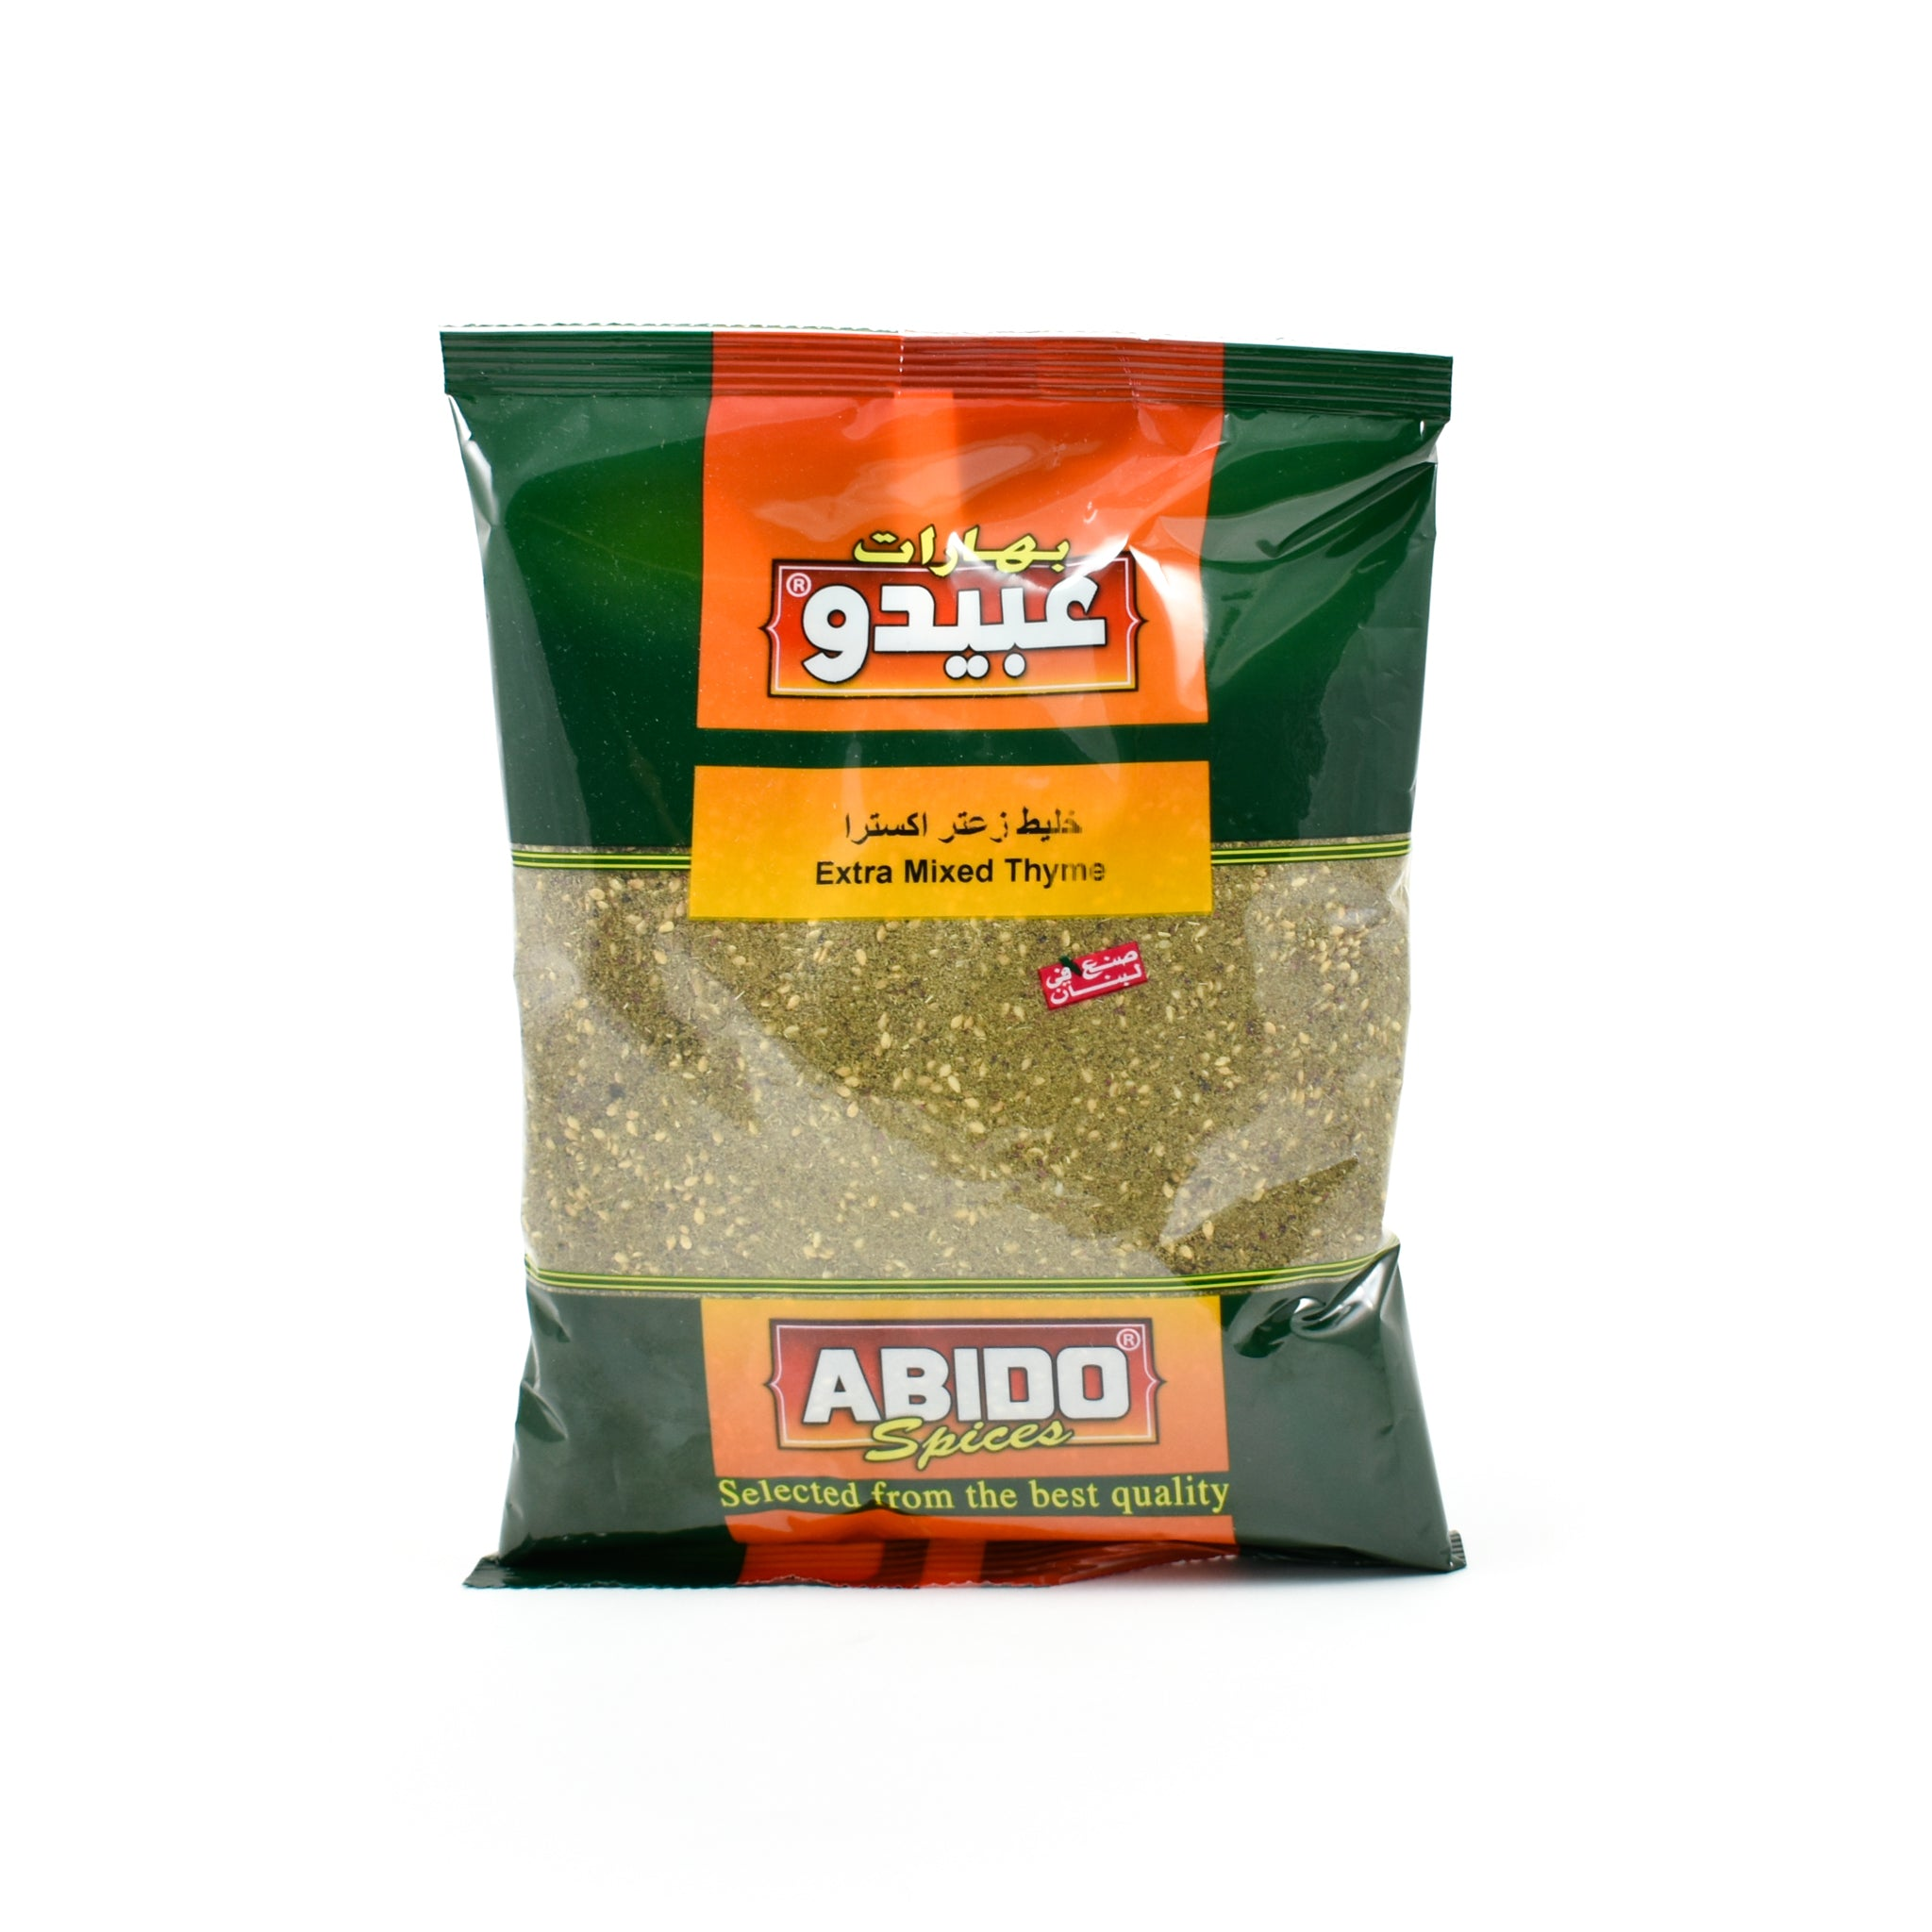 Abido Zaatar Baladi aka Extra Mixed Thyme 500g Ingredients Seasonings Middle Eastern Food